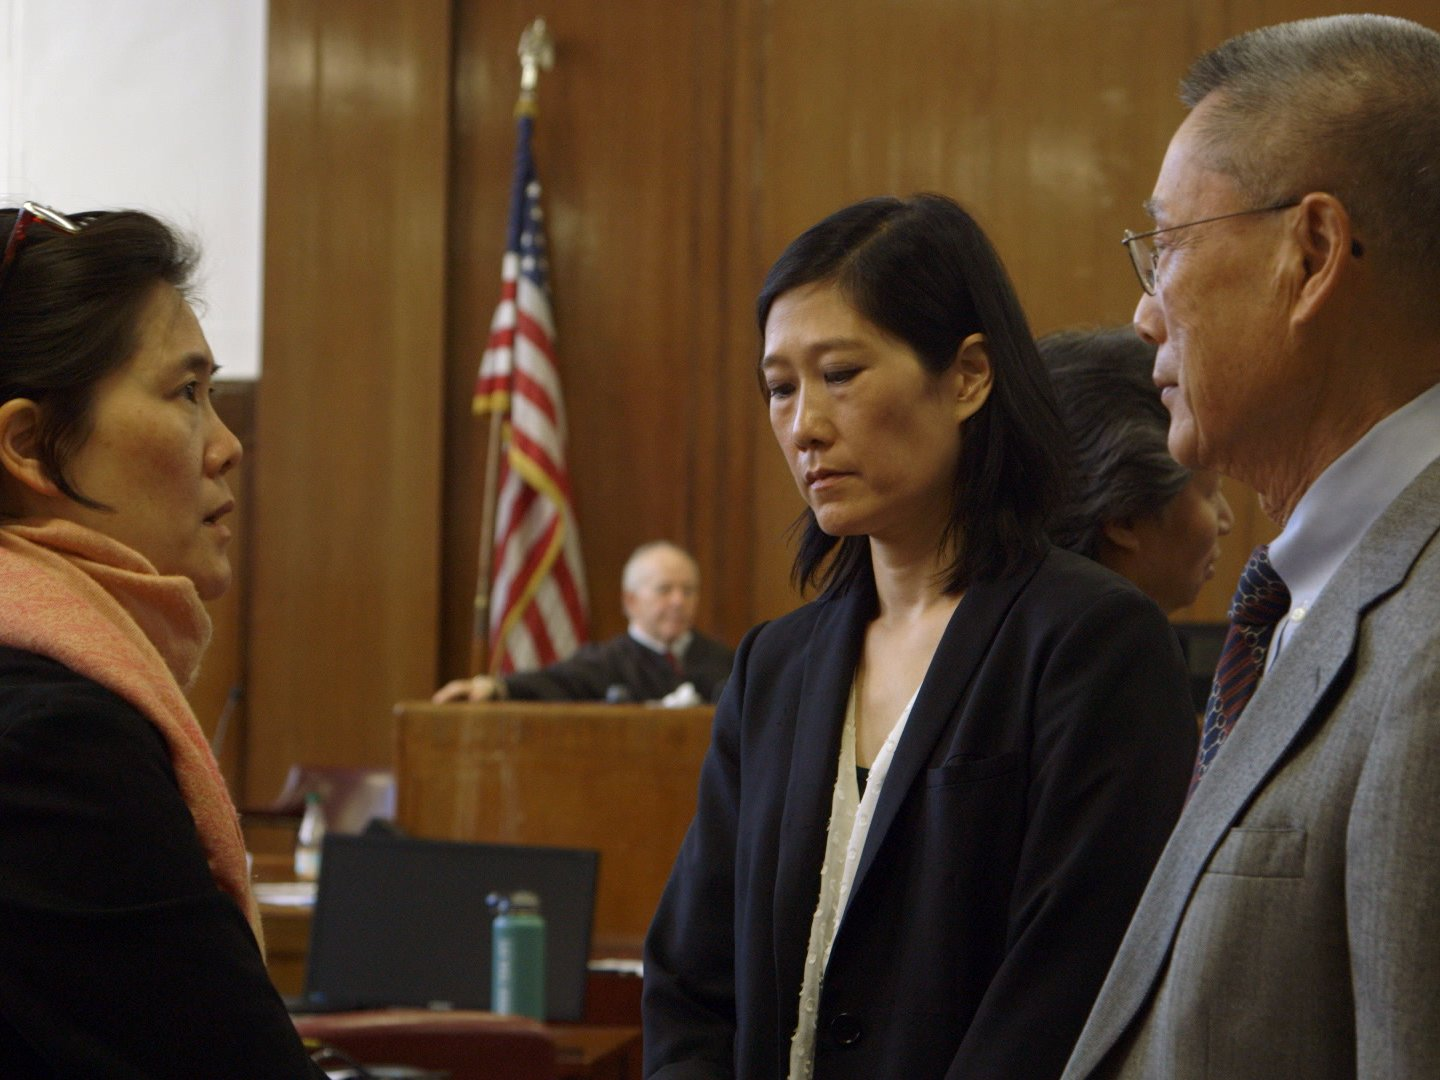 James spent the length of the three-month trial following the Sung family and trying to clear their name. (Image: Frontline/Screenshot)